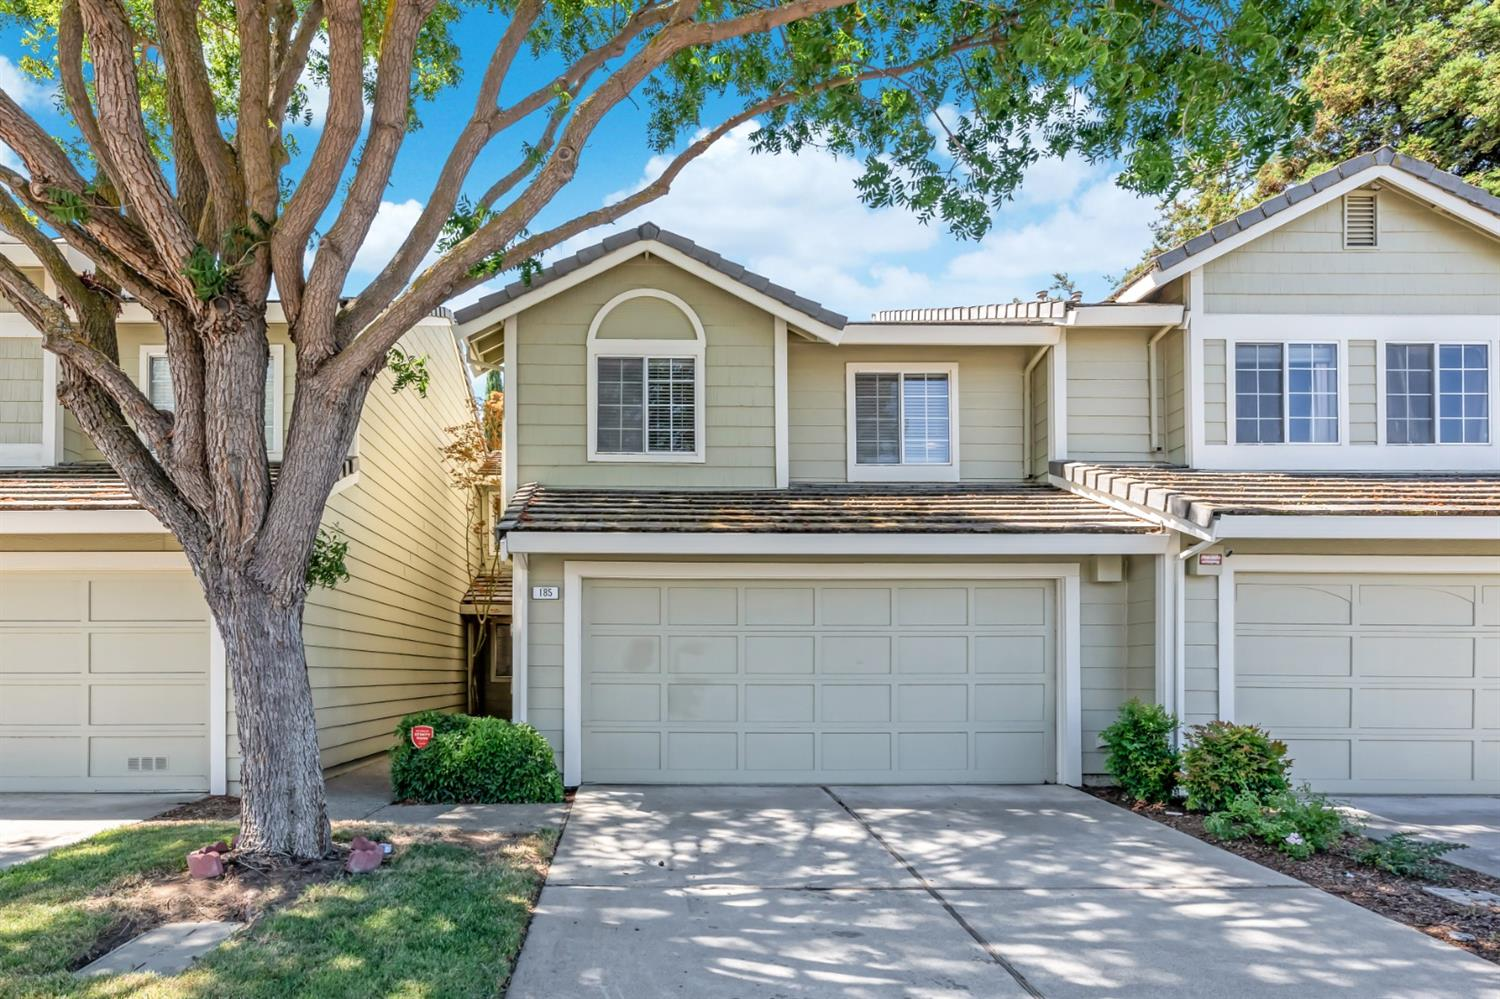 Great starter home located in the desirable Marina Park neighborhood. This two story home comes with aprx 1,608 square feet of living space w/ 3 bedrooms, 2.5 bathrooms and 2 car garage. Walk into this functional floor plan with dining & living room combo overlooking the backyard. Features such as laminated floorings, new interior paint, fireplace & more. Updated kitchen with breakfast nook, maple cabinets, quartz countertop, stainless steel appliances and sink & more. Convenient laundry room. Head upstairs with skylight on the hallway landing, mirrored closets, large owner's bedroom with sitting area. Sumptous owner's bathroom with skylight, walk in shower and walk in closet. Relax & barbecue in your backyard with covered patio. Walk to th